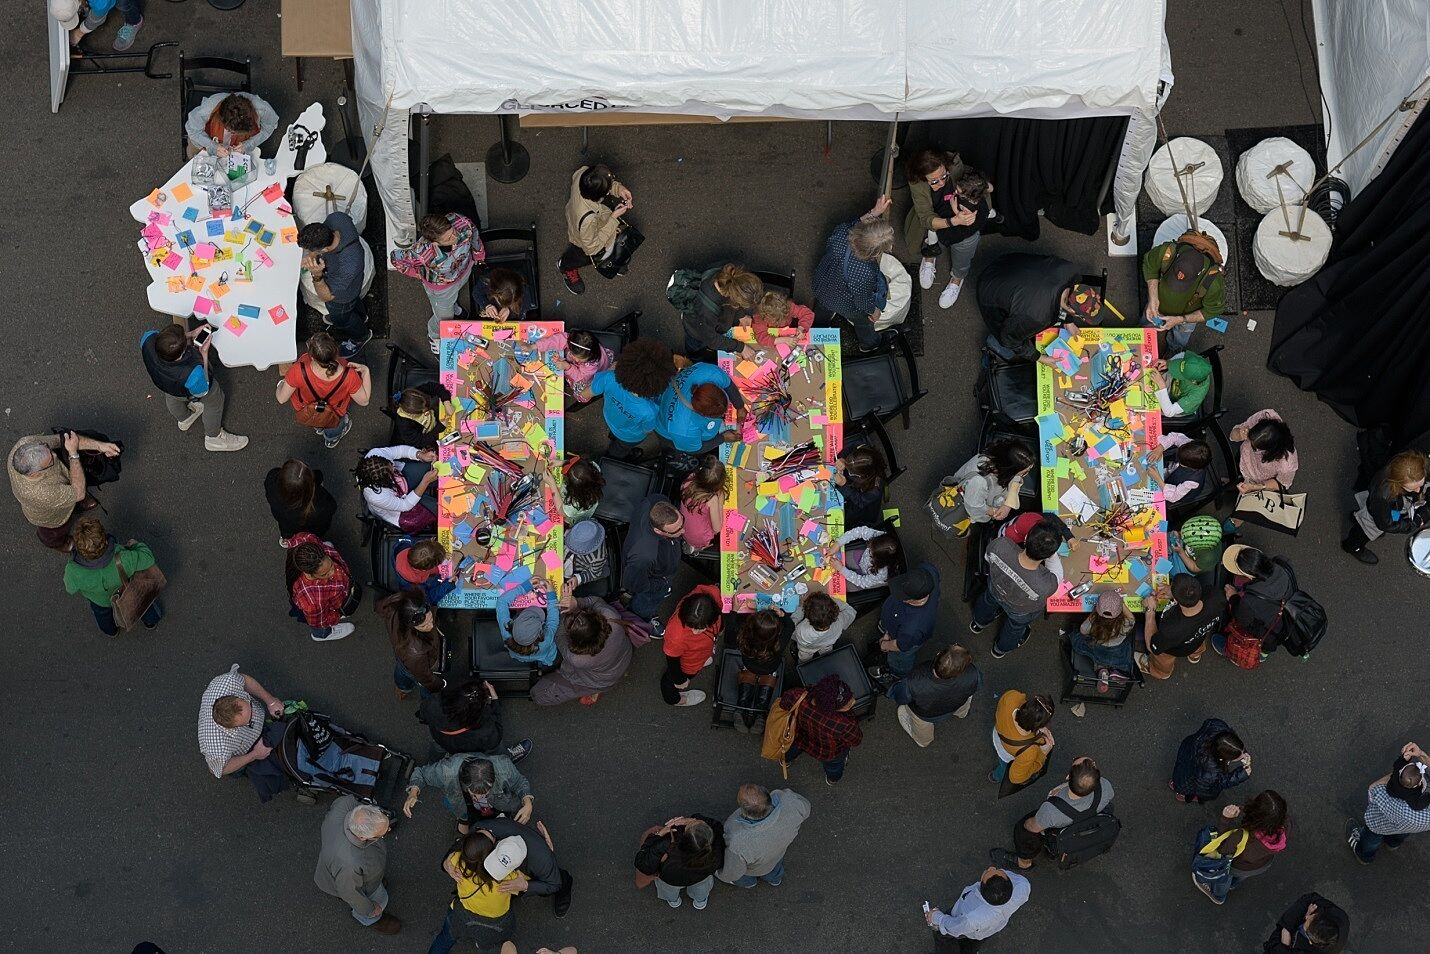 Looking down on people making art at tables.